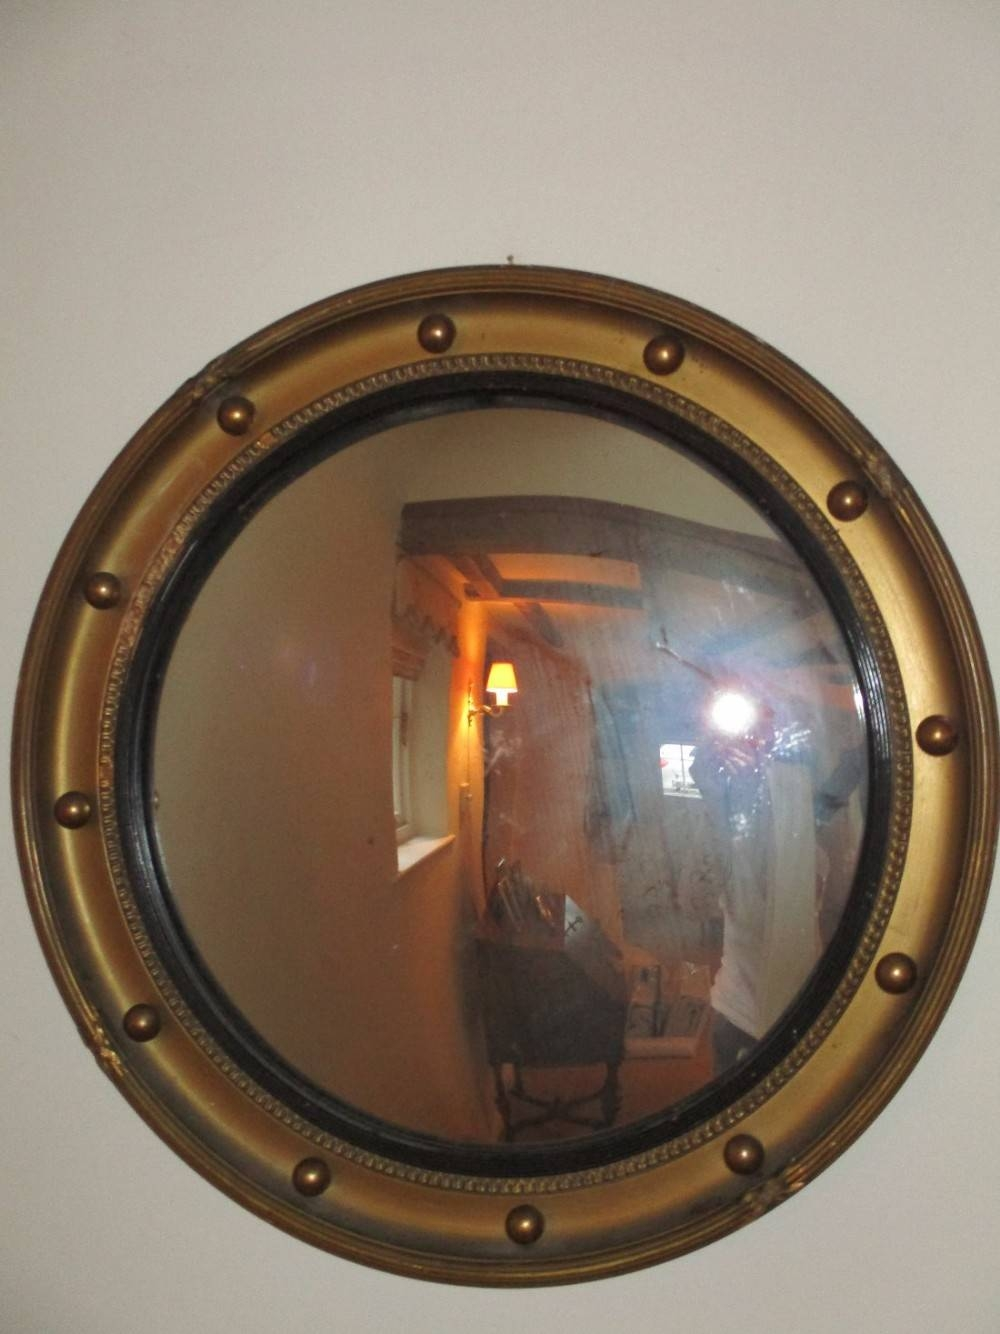 Large Convex Mirror | 441292 | Sellingantiques.co.uk pertaining to Large Convex Mirrors (Image 10 of 25)